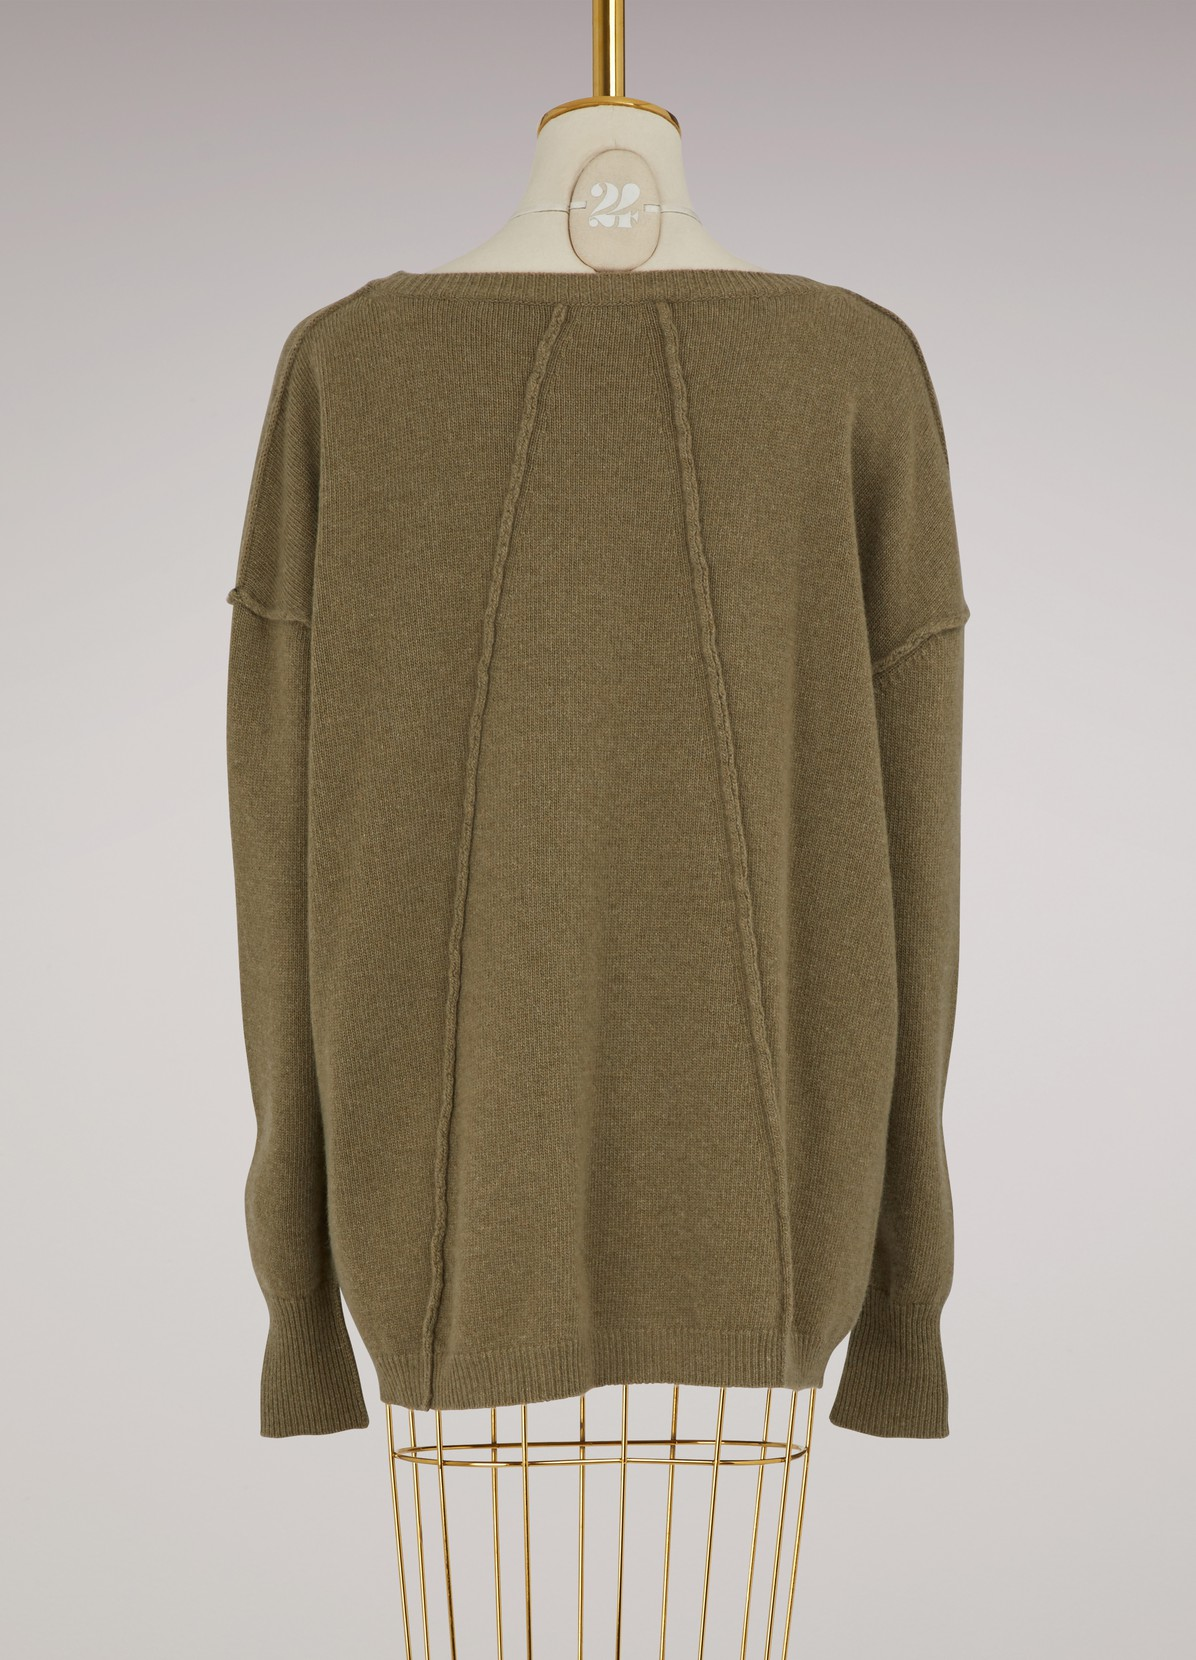 Oversized Sweater with stitching | ROBERTO COLLINA | 24 Sèvres